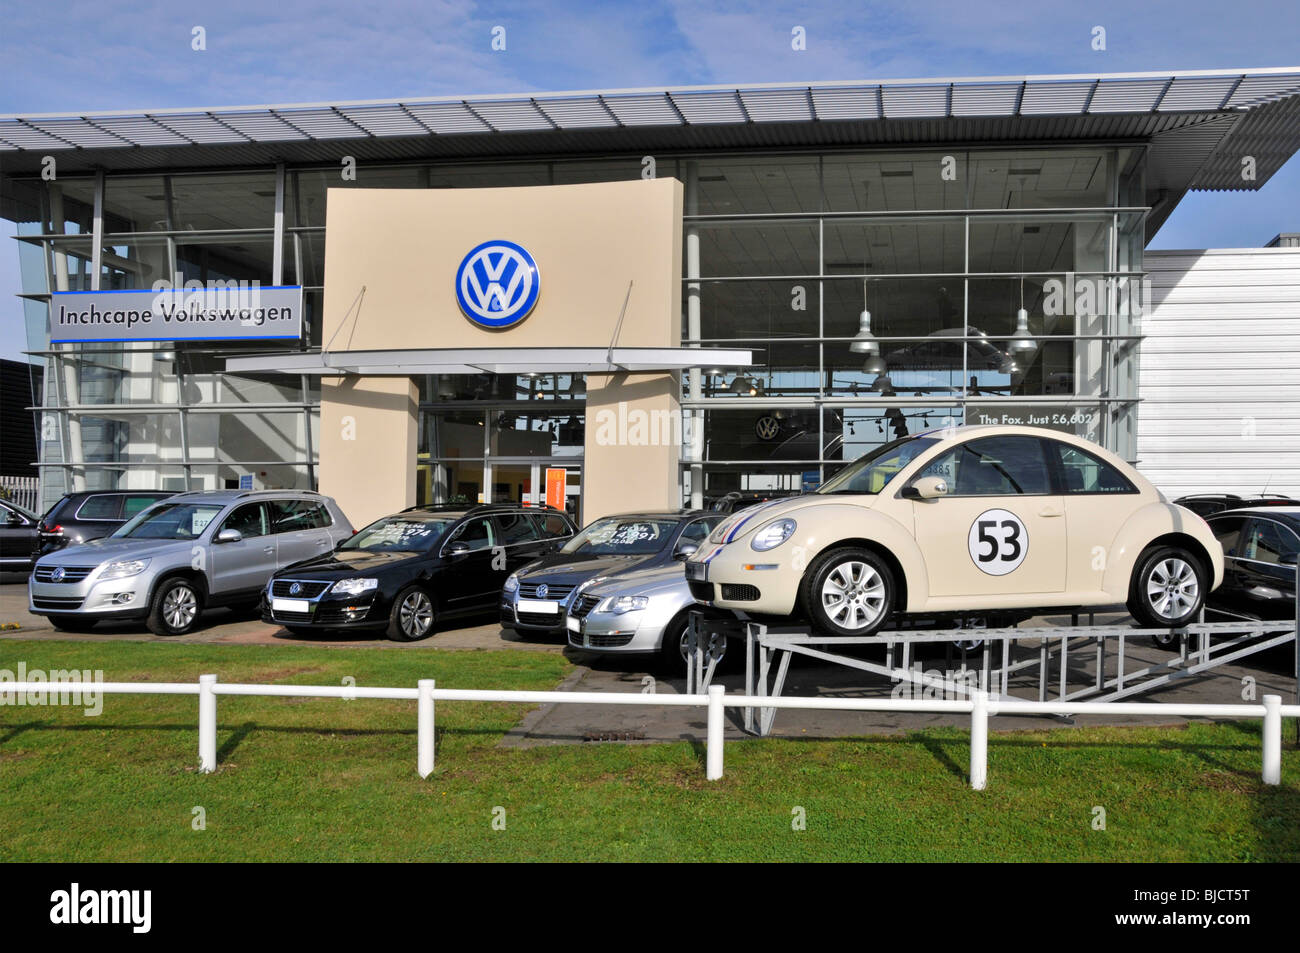 Inchcape Volkswagen car showrooms - Stock Image